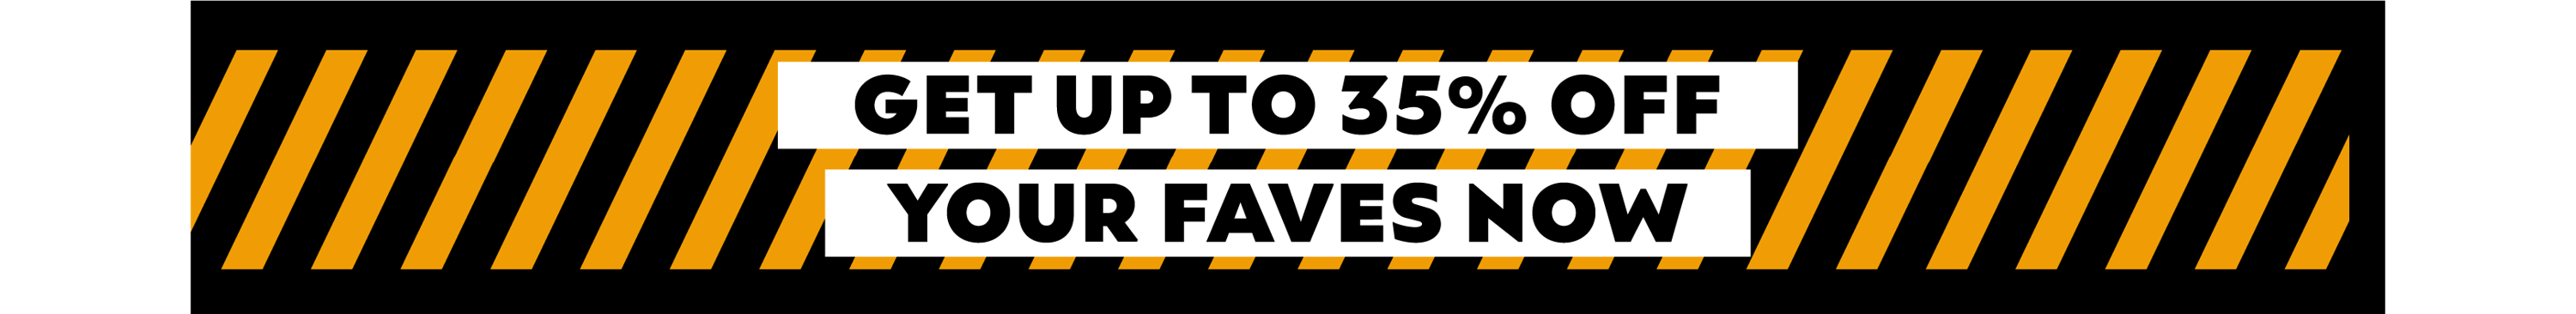 Get Up To 35% Off Your Faves Now